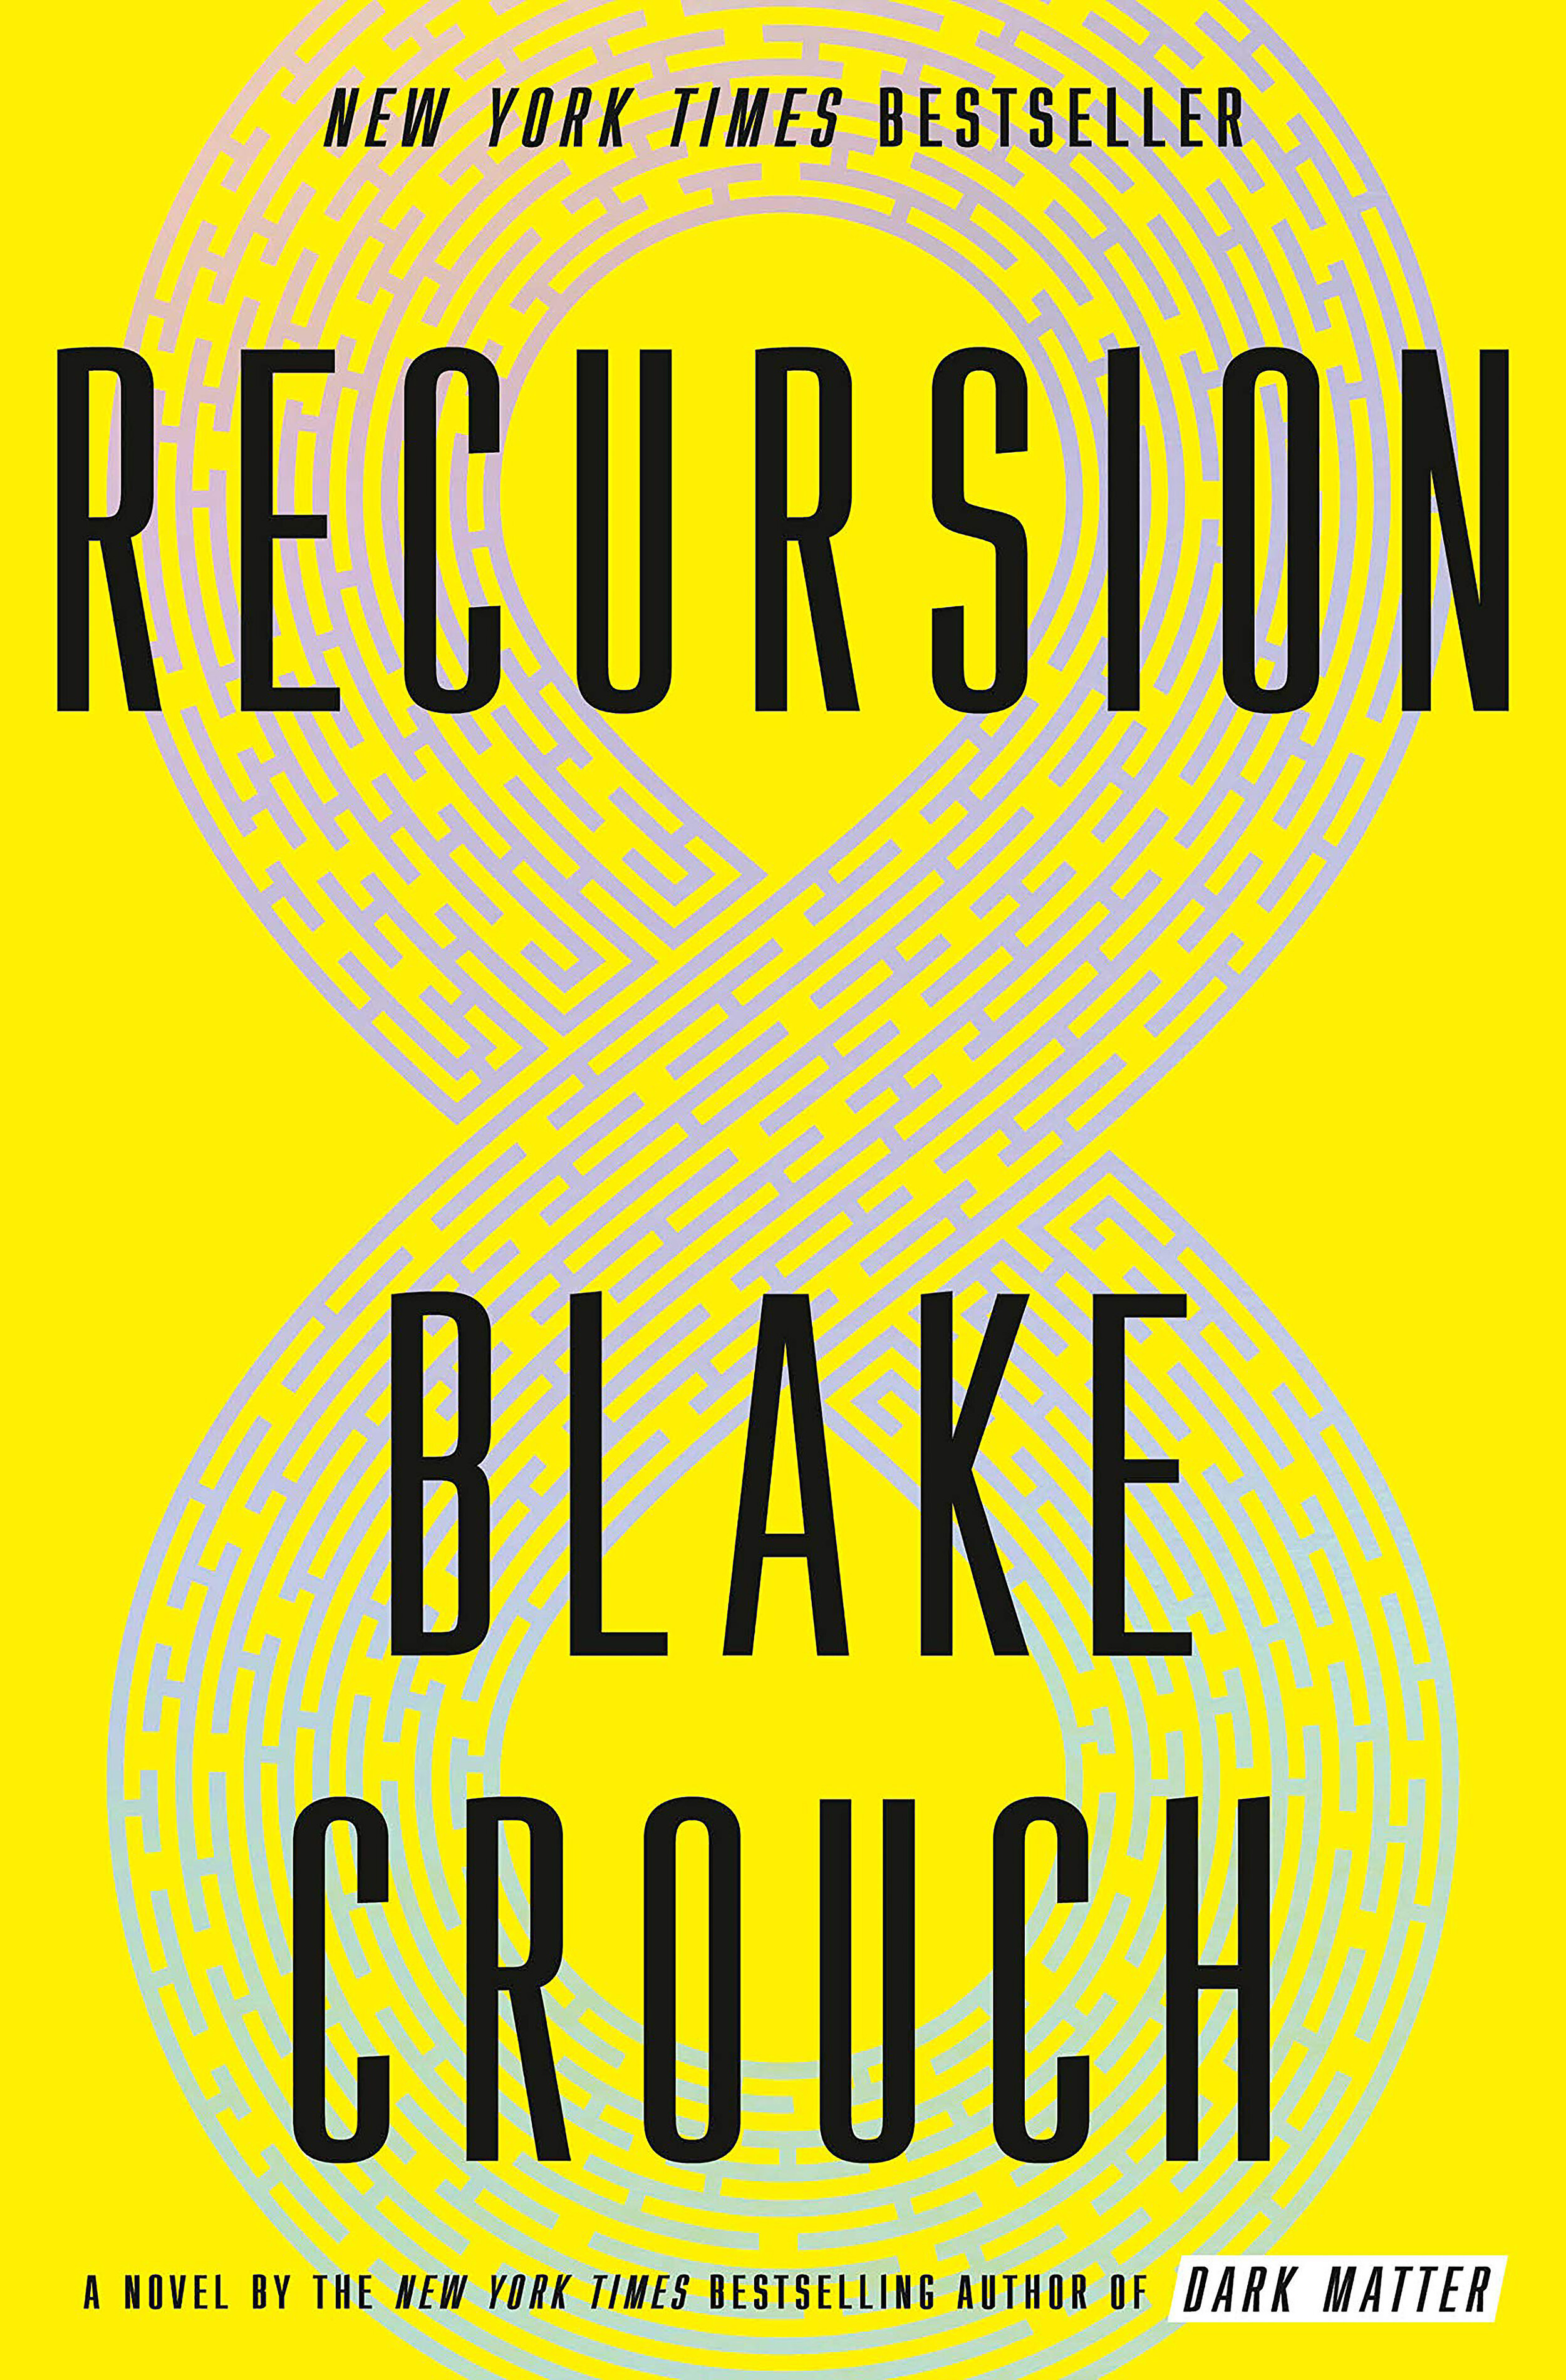 Recursion - by Blake Crouch